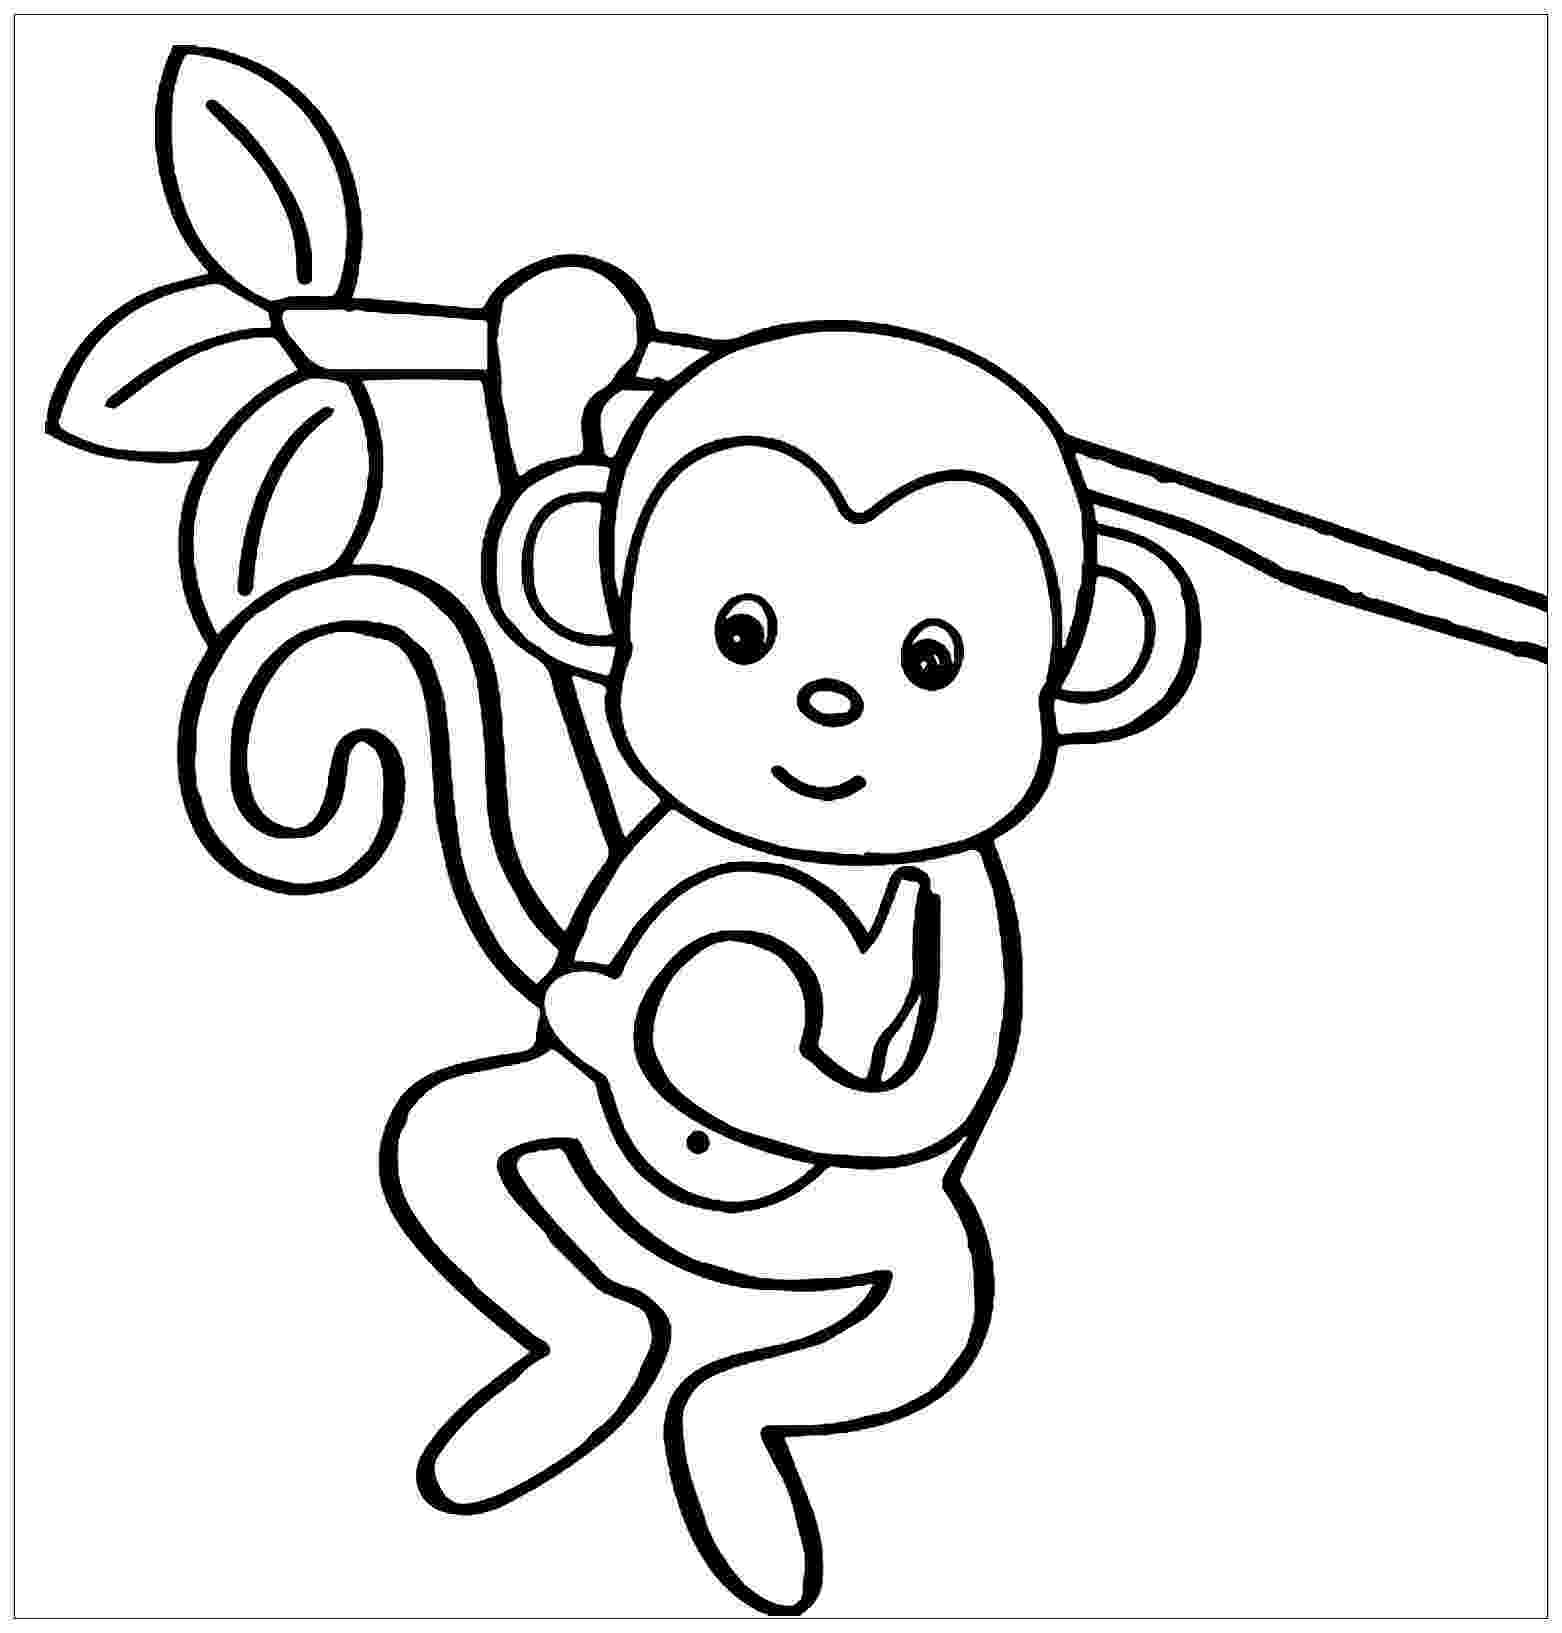 monkey colouring page free printable monkey coloring pages for kids cool2bkids monkey page colouring